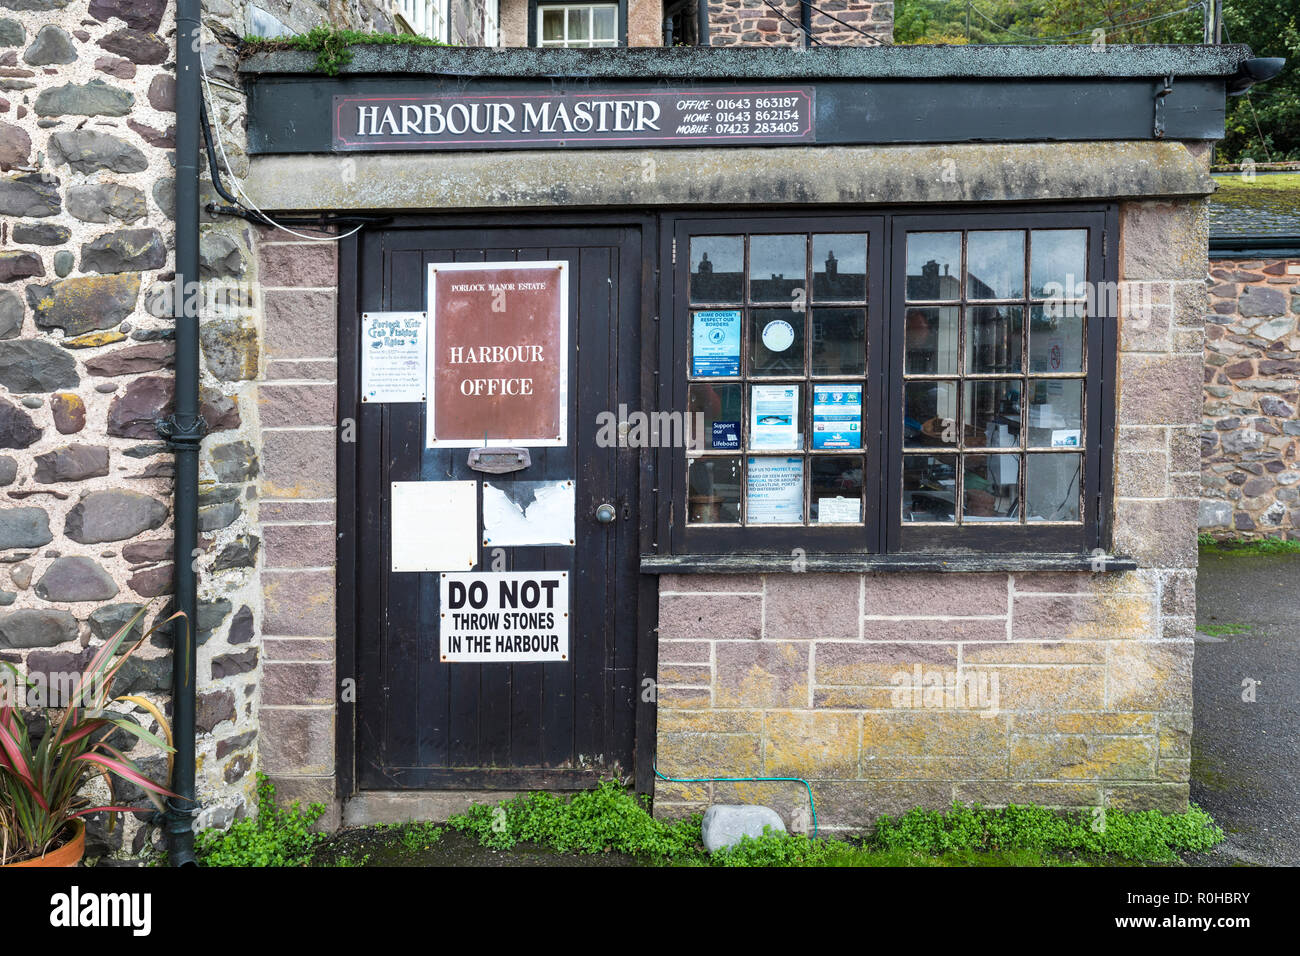 Harbour Master office with do not throw stones in the harbour sign, Porlock Weir, Devon, UK - Stock Image